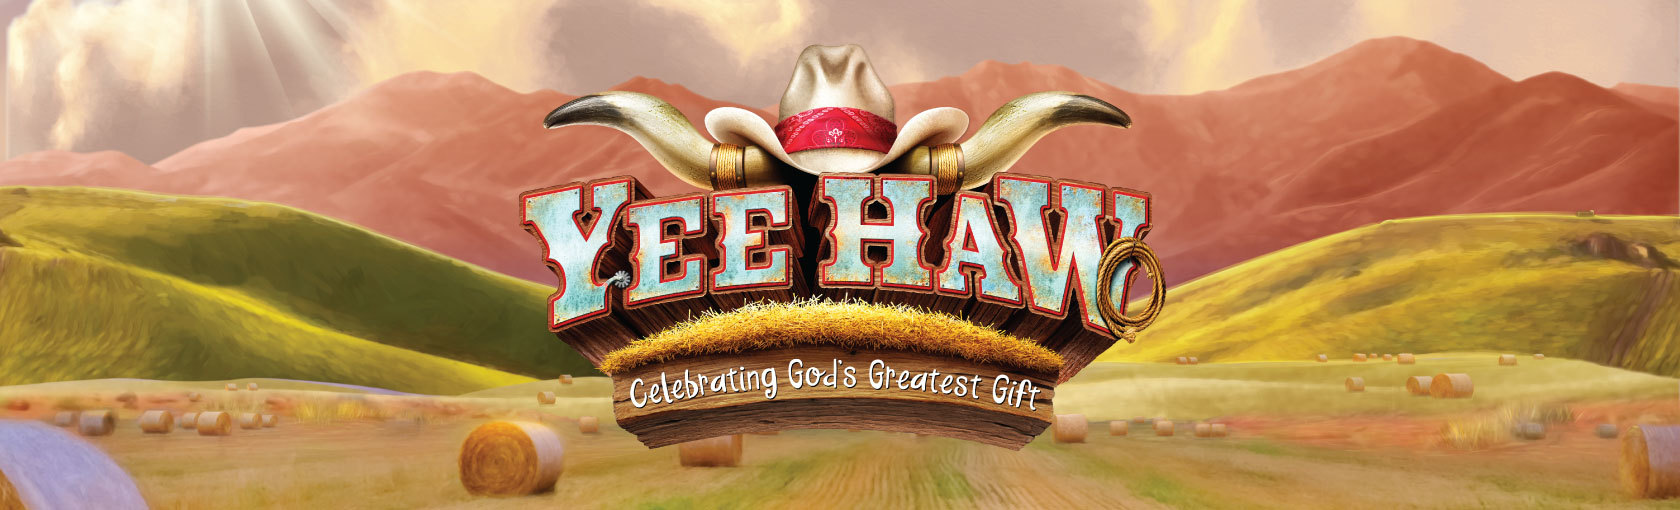 Image result for yeehaw vbs